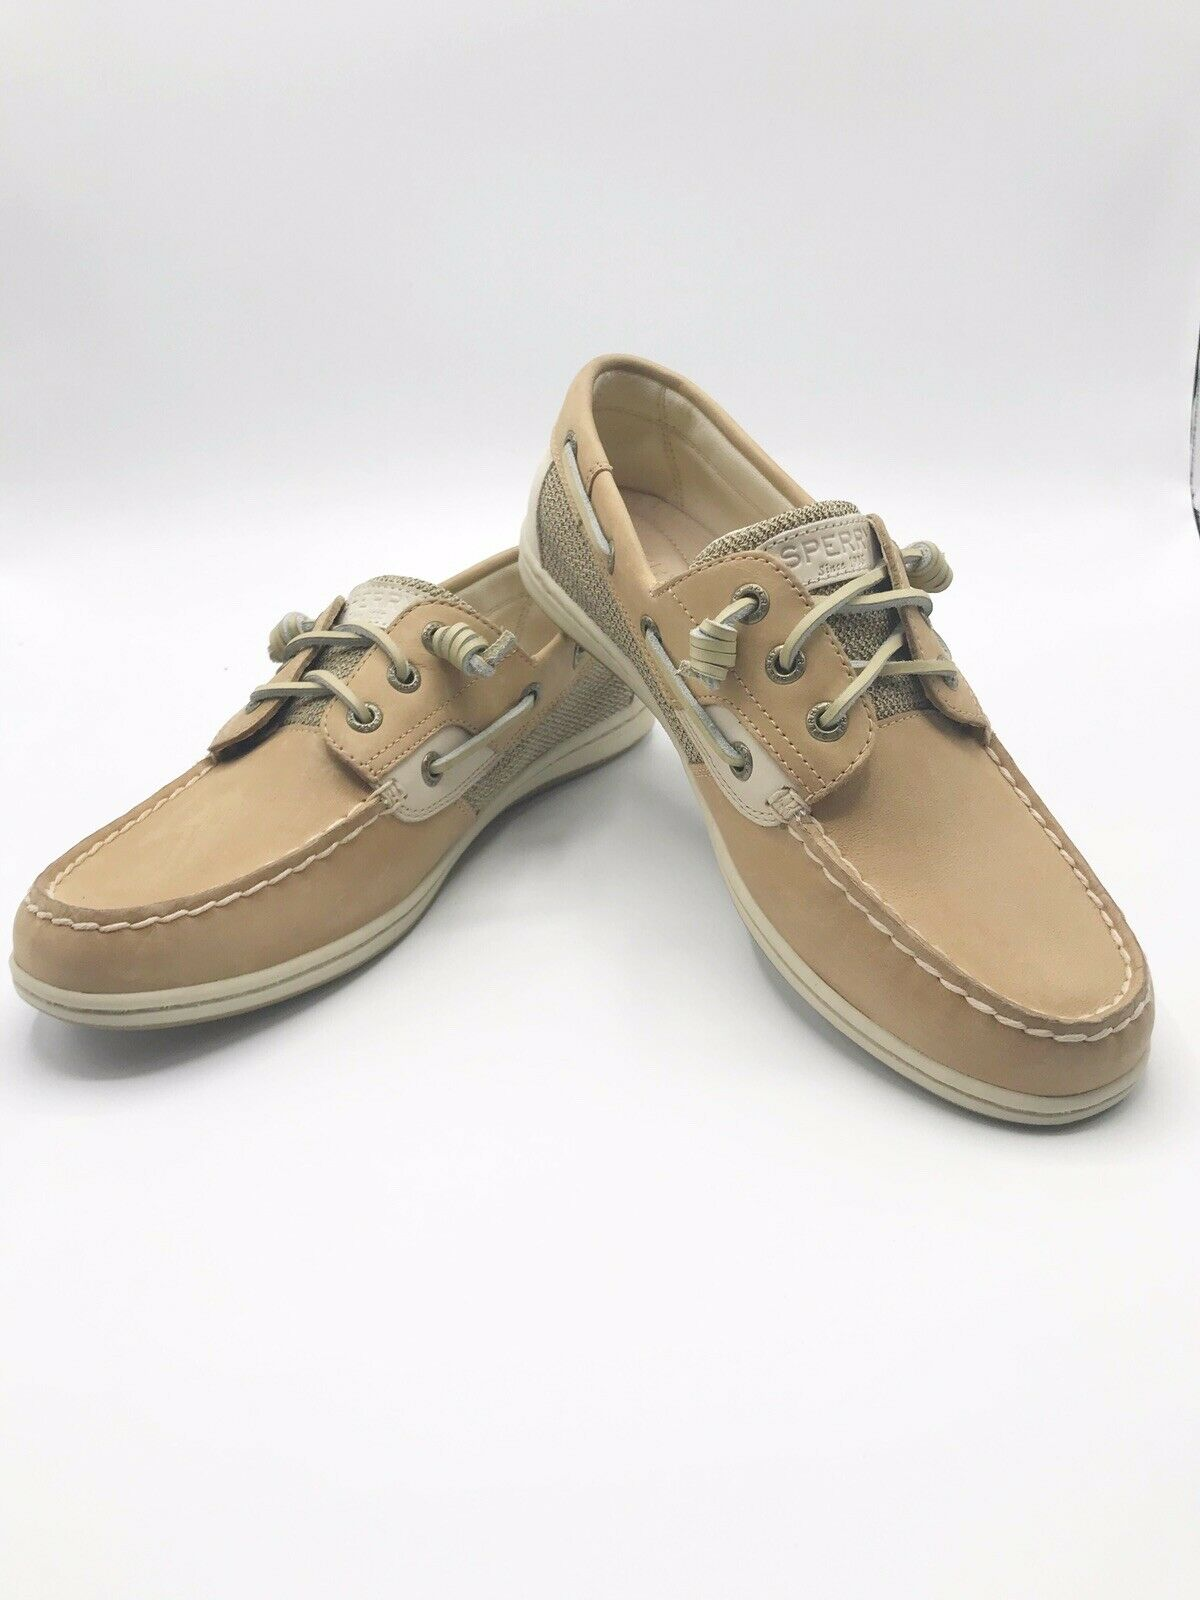 Songfish Slip on Boat Shoe Grey White 9 M Sperry Womens